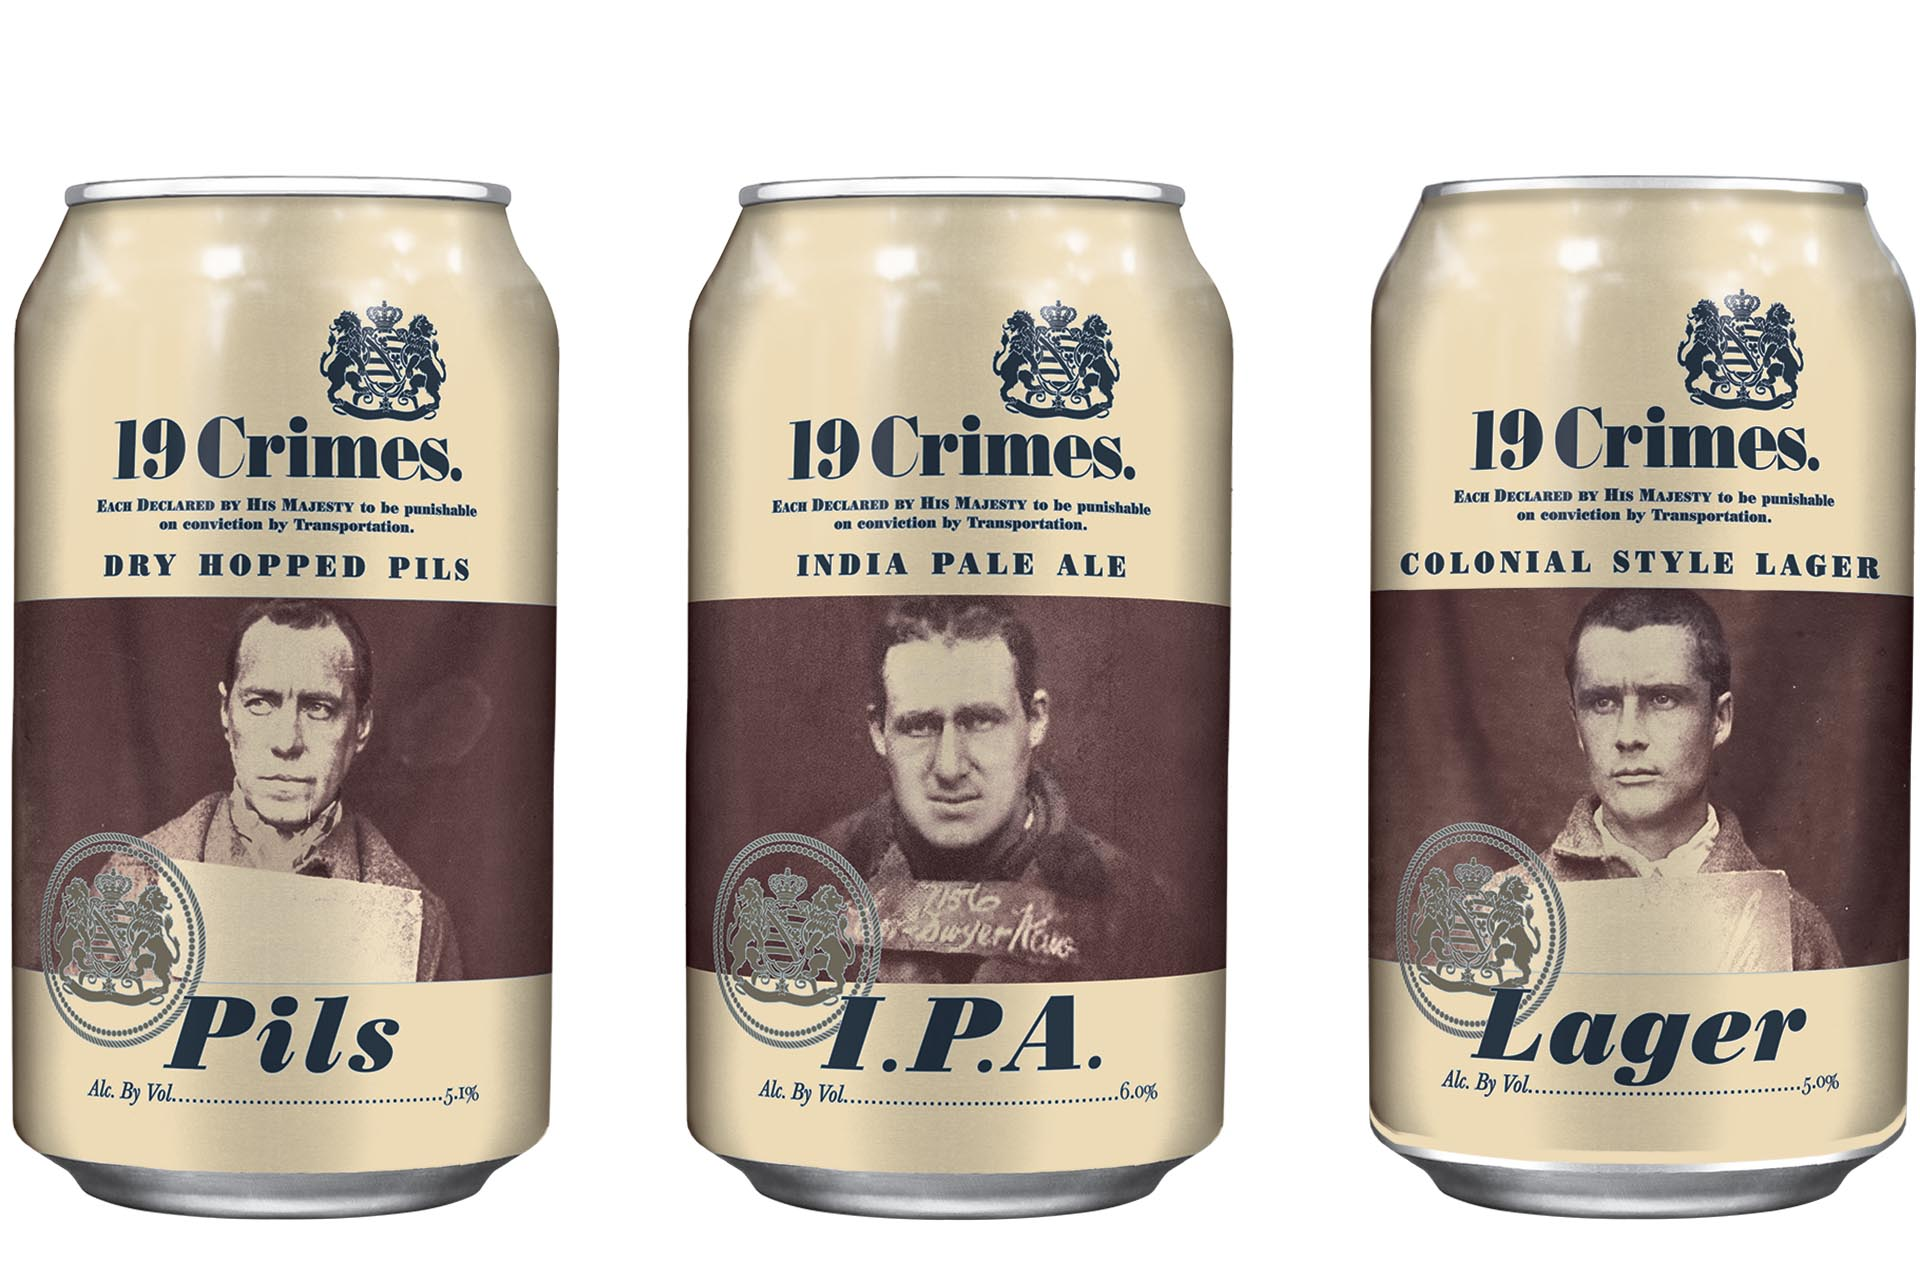 19 Crimes Launches Beer Line In U.s. photo